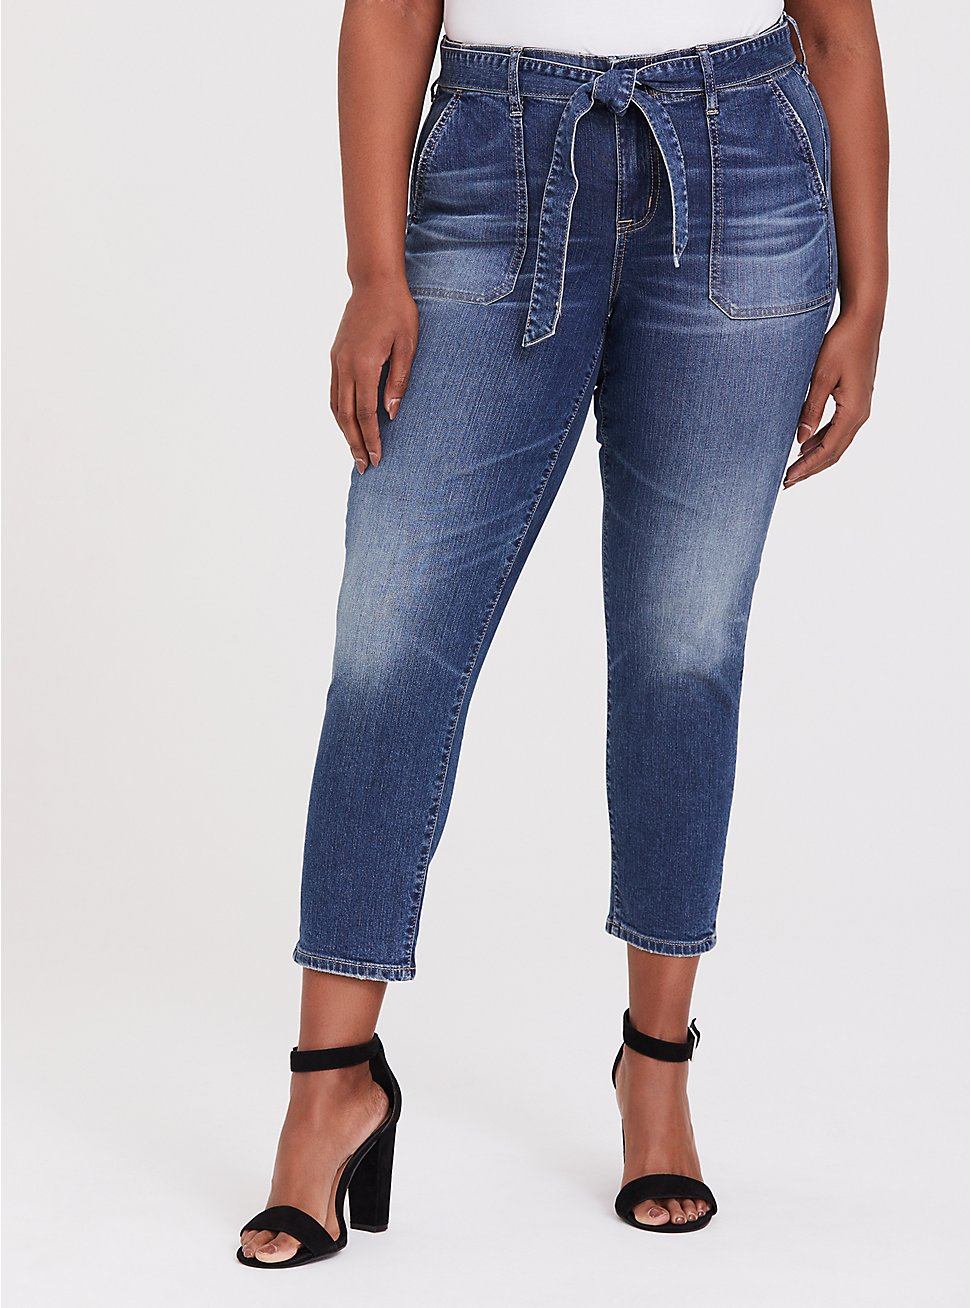 Mid Rise Straight Jean - Vintage Stretch Medium Wash with Sash, , fitModel1-hires